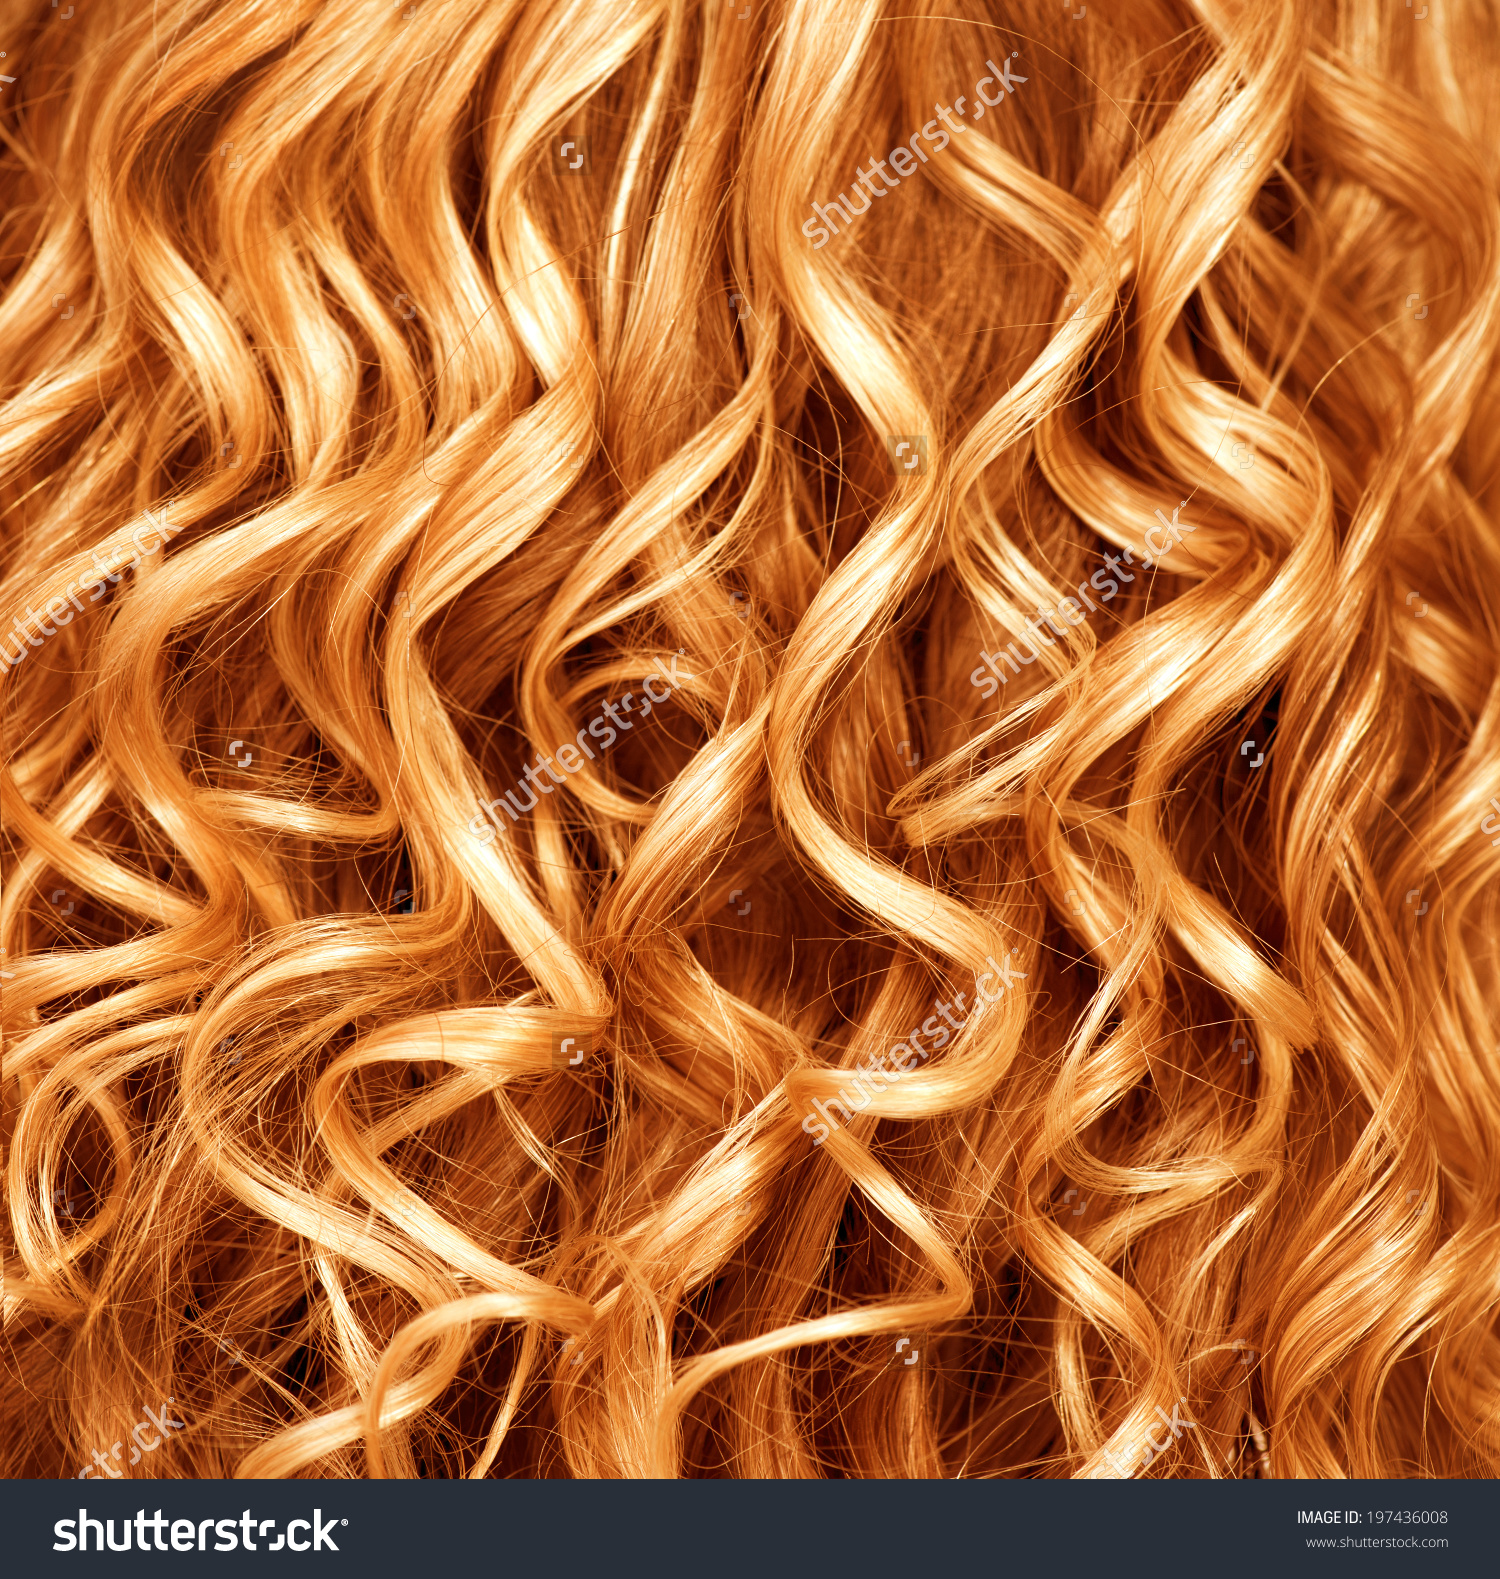 Curly Red Hair Closeup Wavy Blond Stock Foto 197436008.